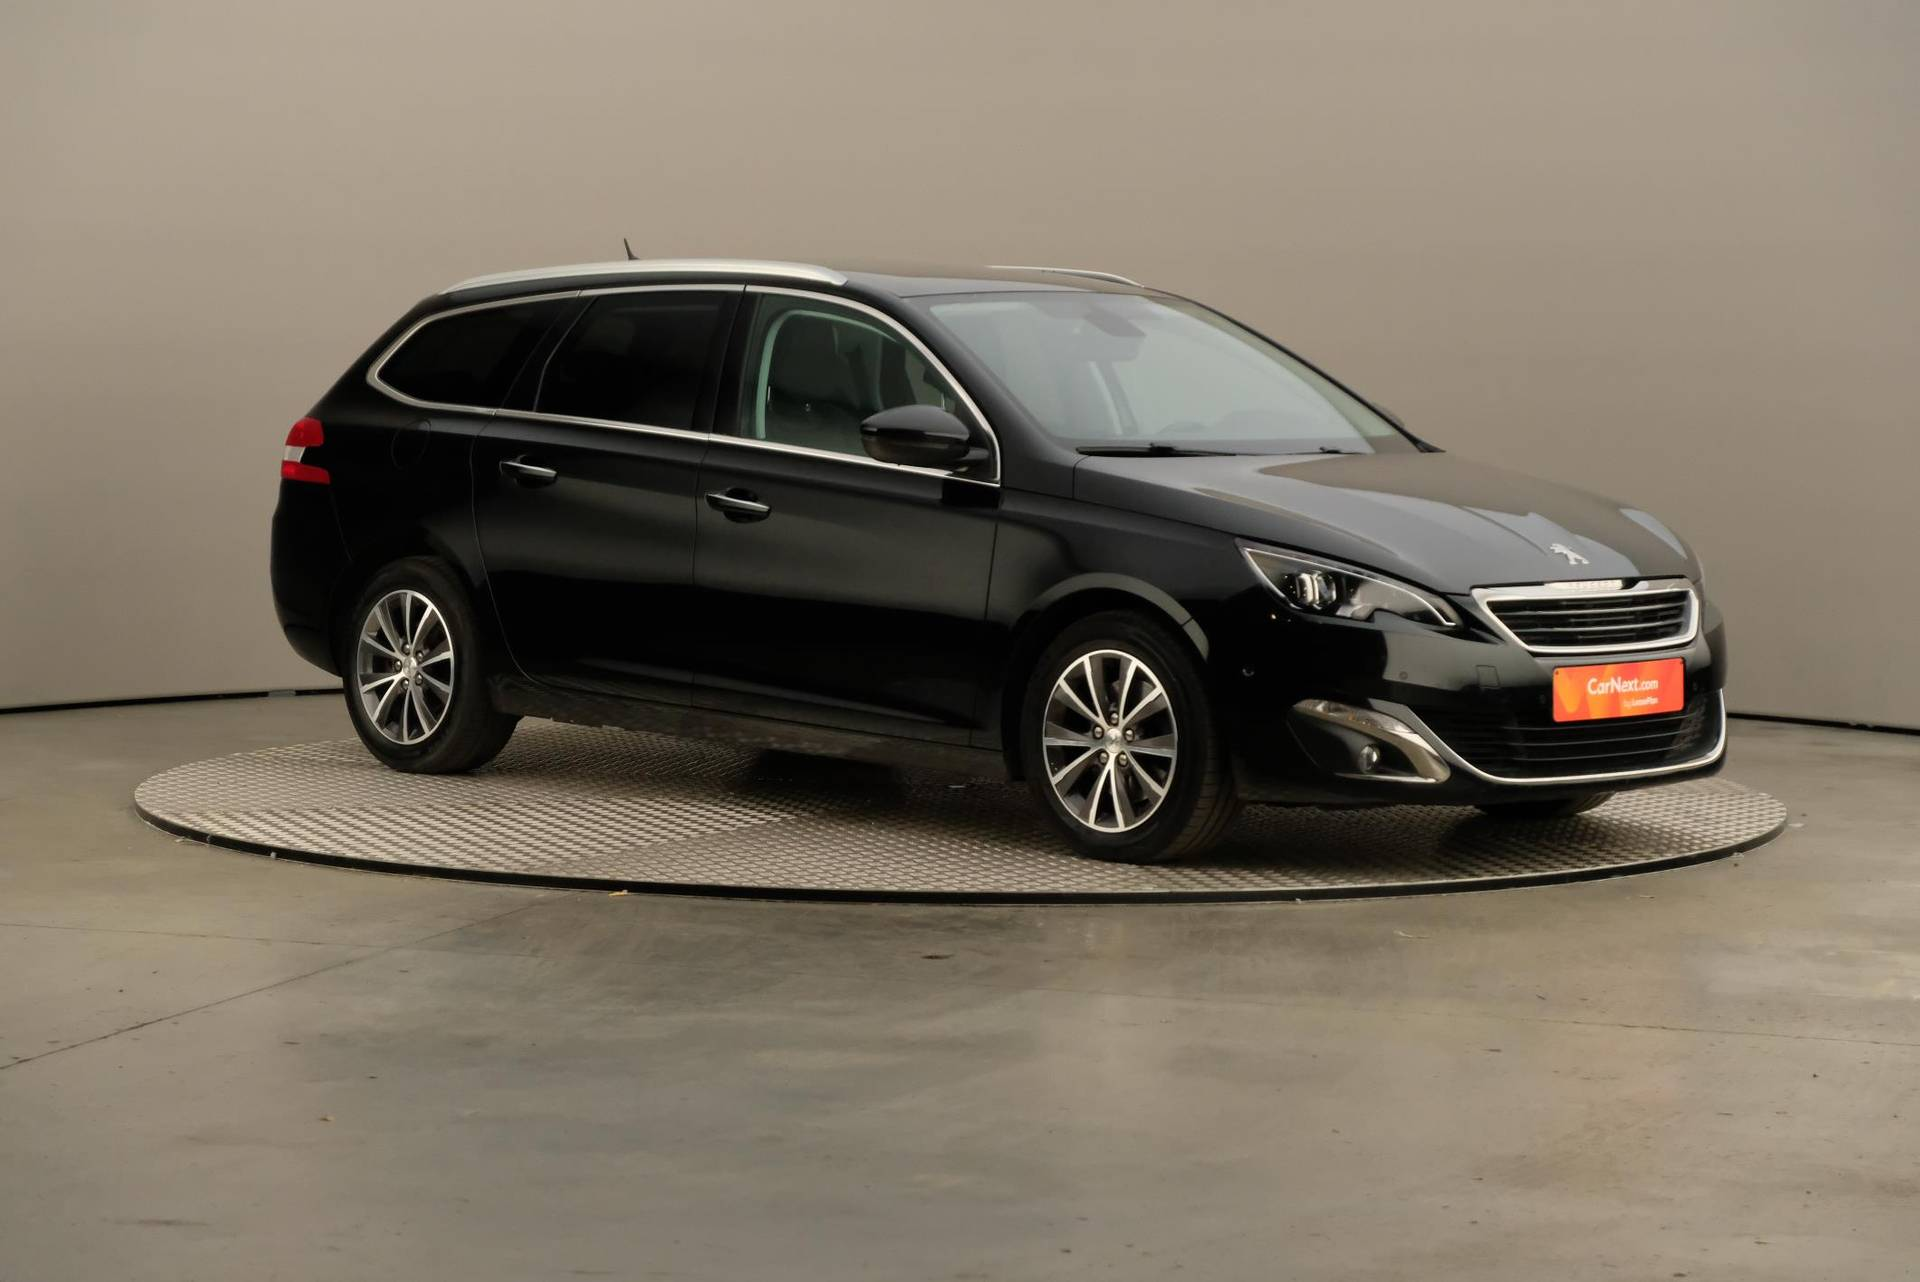 Peugeot 308 SW BlueHDi 150 Stop & Start, Active, 360-image27